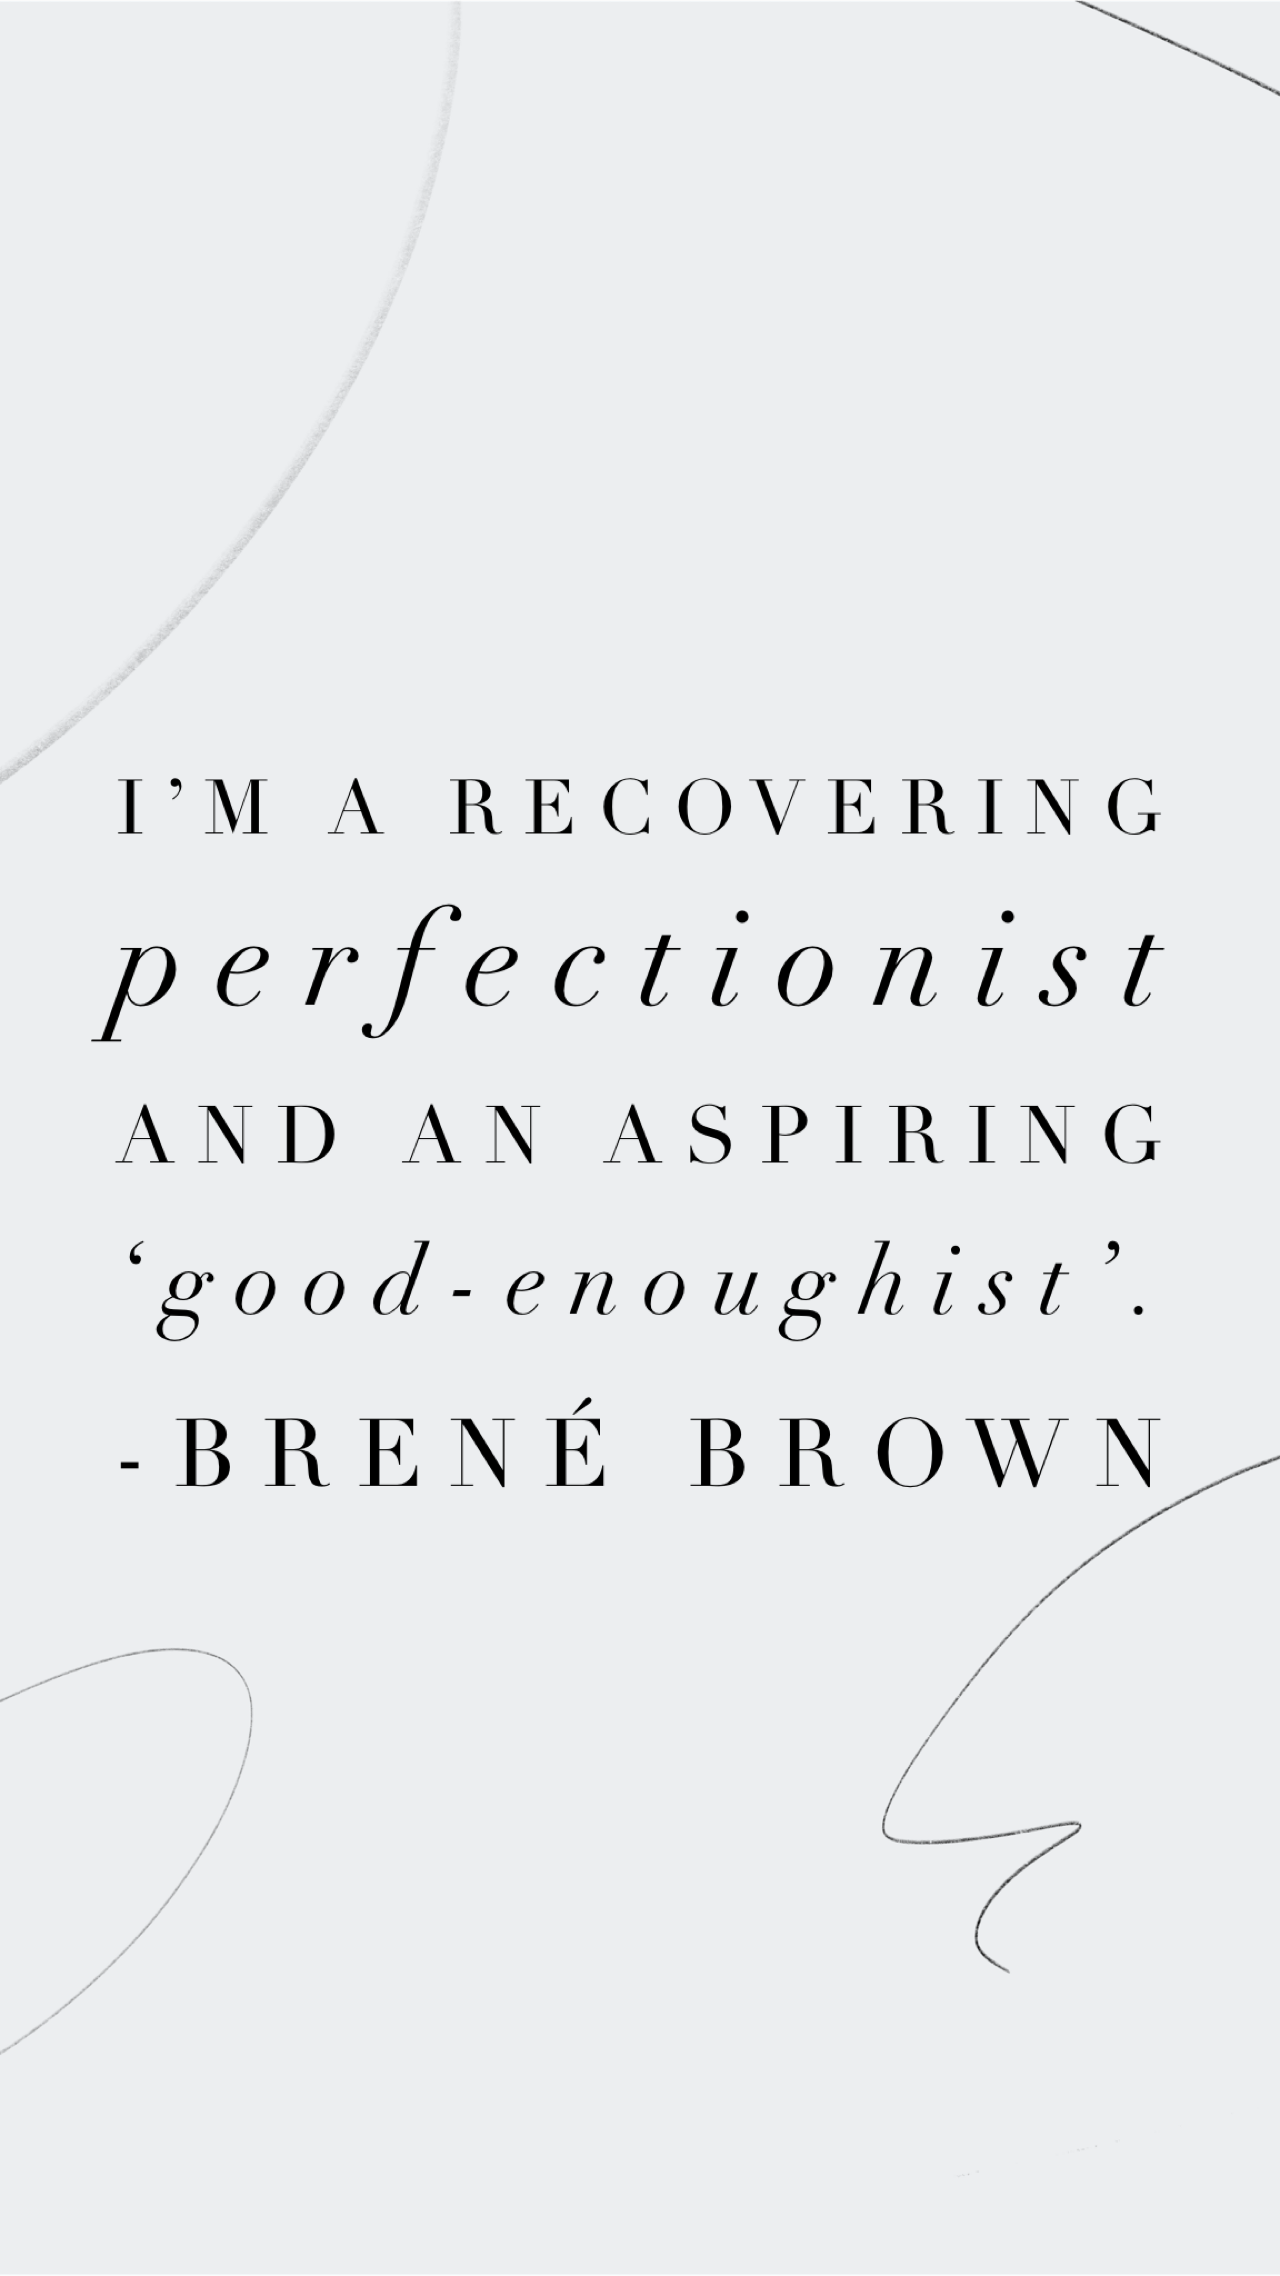 """Quote from Brene Brown """"I'm a recovering perfectionist and an aspiring good-enoughist'"""" on a marbled white background. Self-compassion in Miramar, FL can be helped with online counseling in Florida. A Miramar, FL therapist helps with self-compassion tips here."""